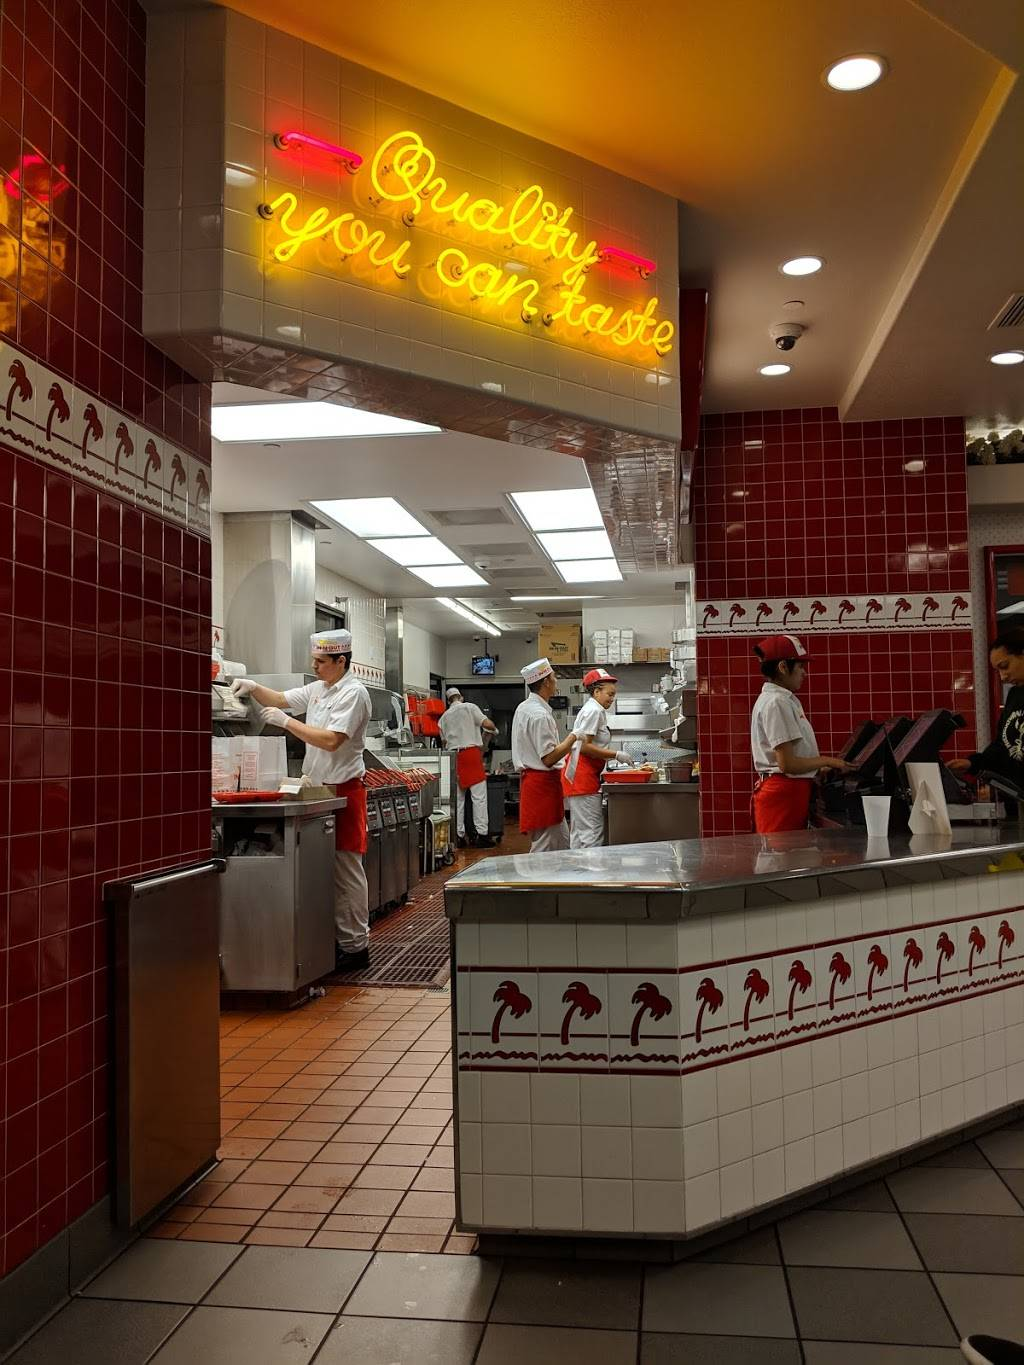 In-N-Out Burger   restaurant   555 Willie Stargell Ave, Alameda, CA 94501, USA   8007861000 OR +1 800-786-1000